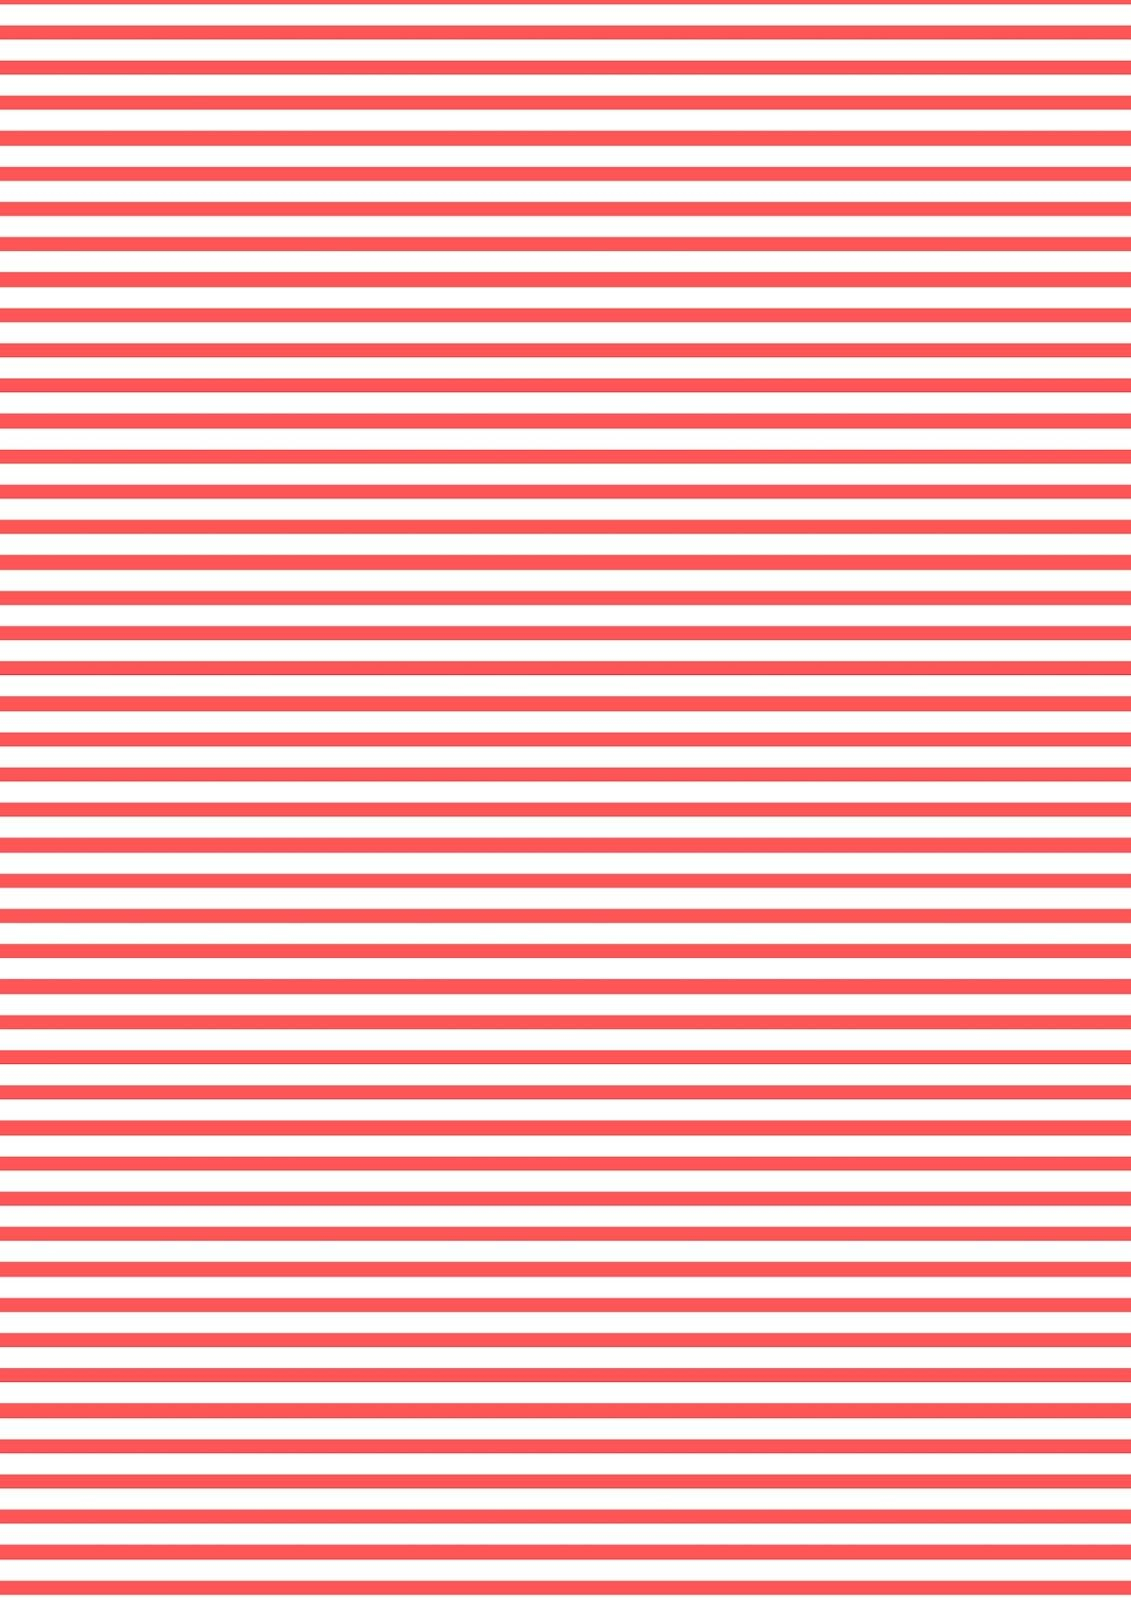 Free Printable Stars And Stripes Pattern Papers - Ausdruckbares - Free Printable Wallpaper Patterns